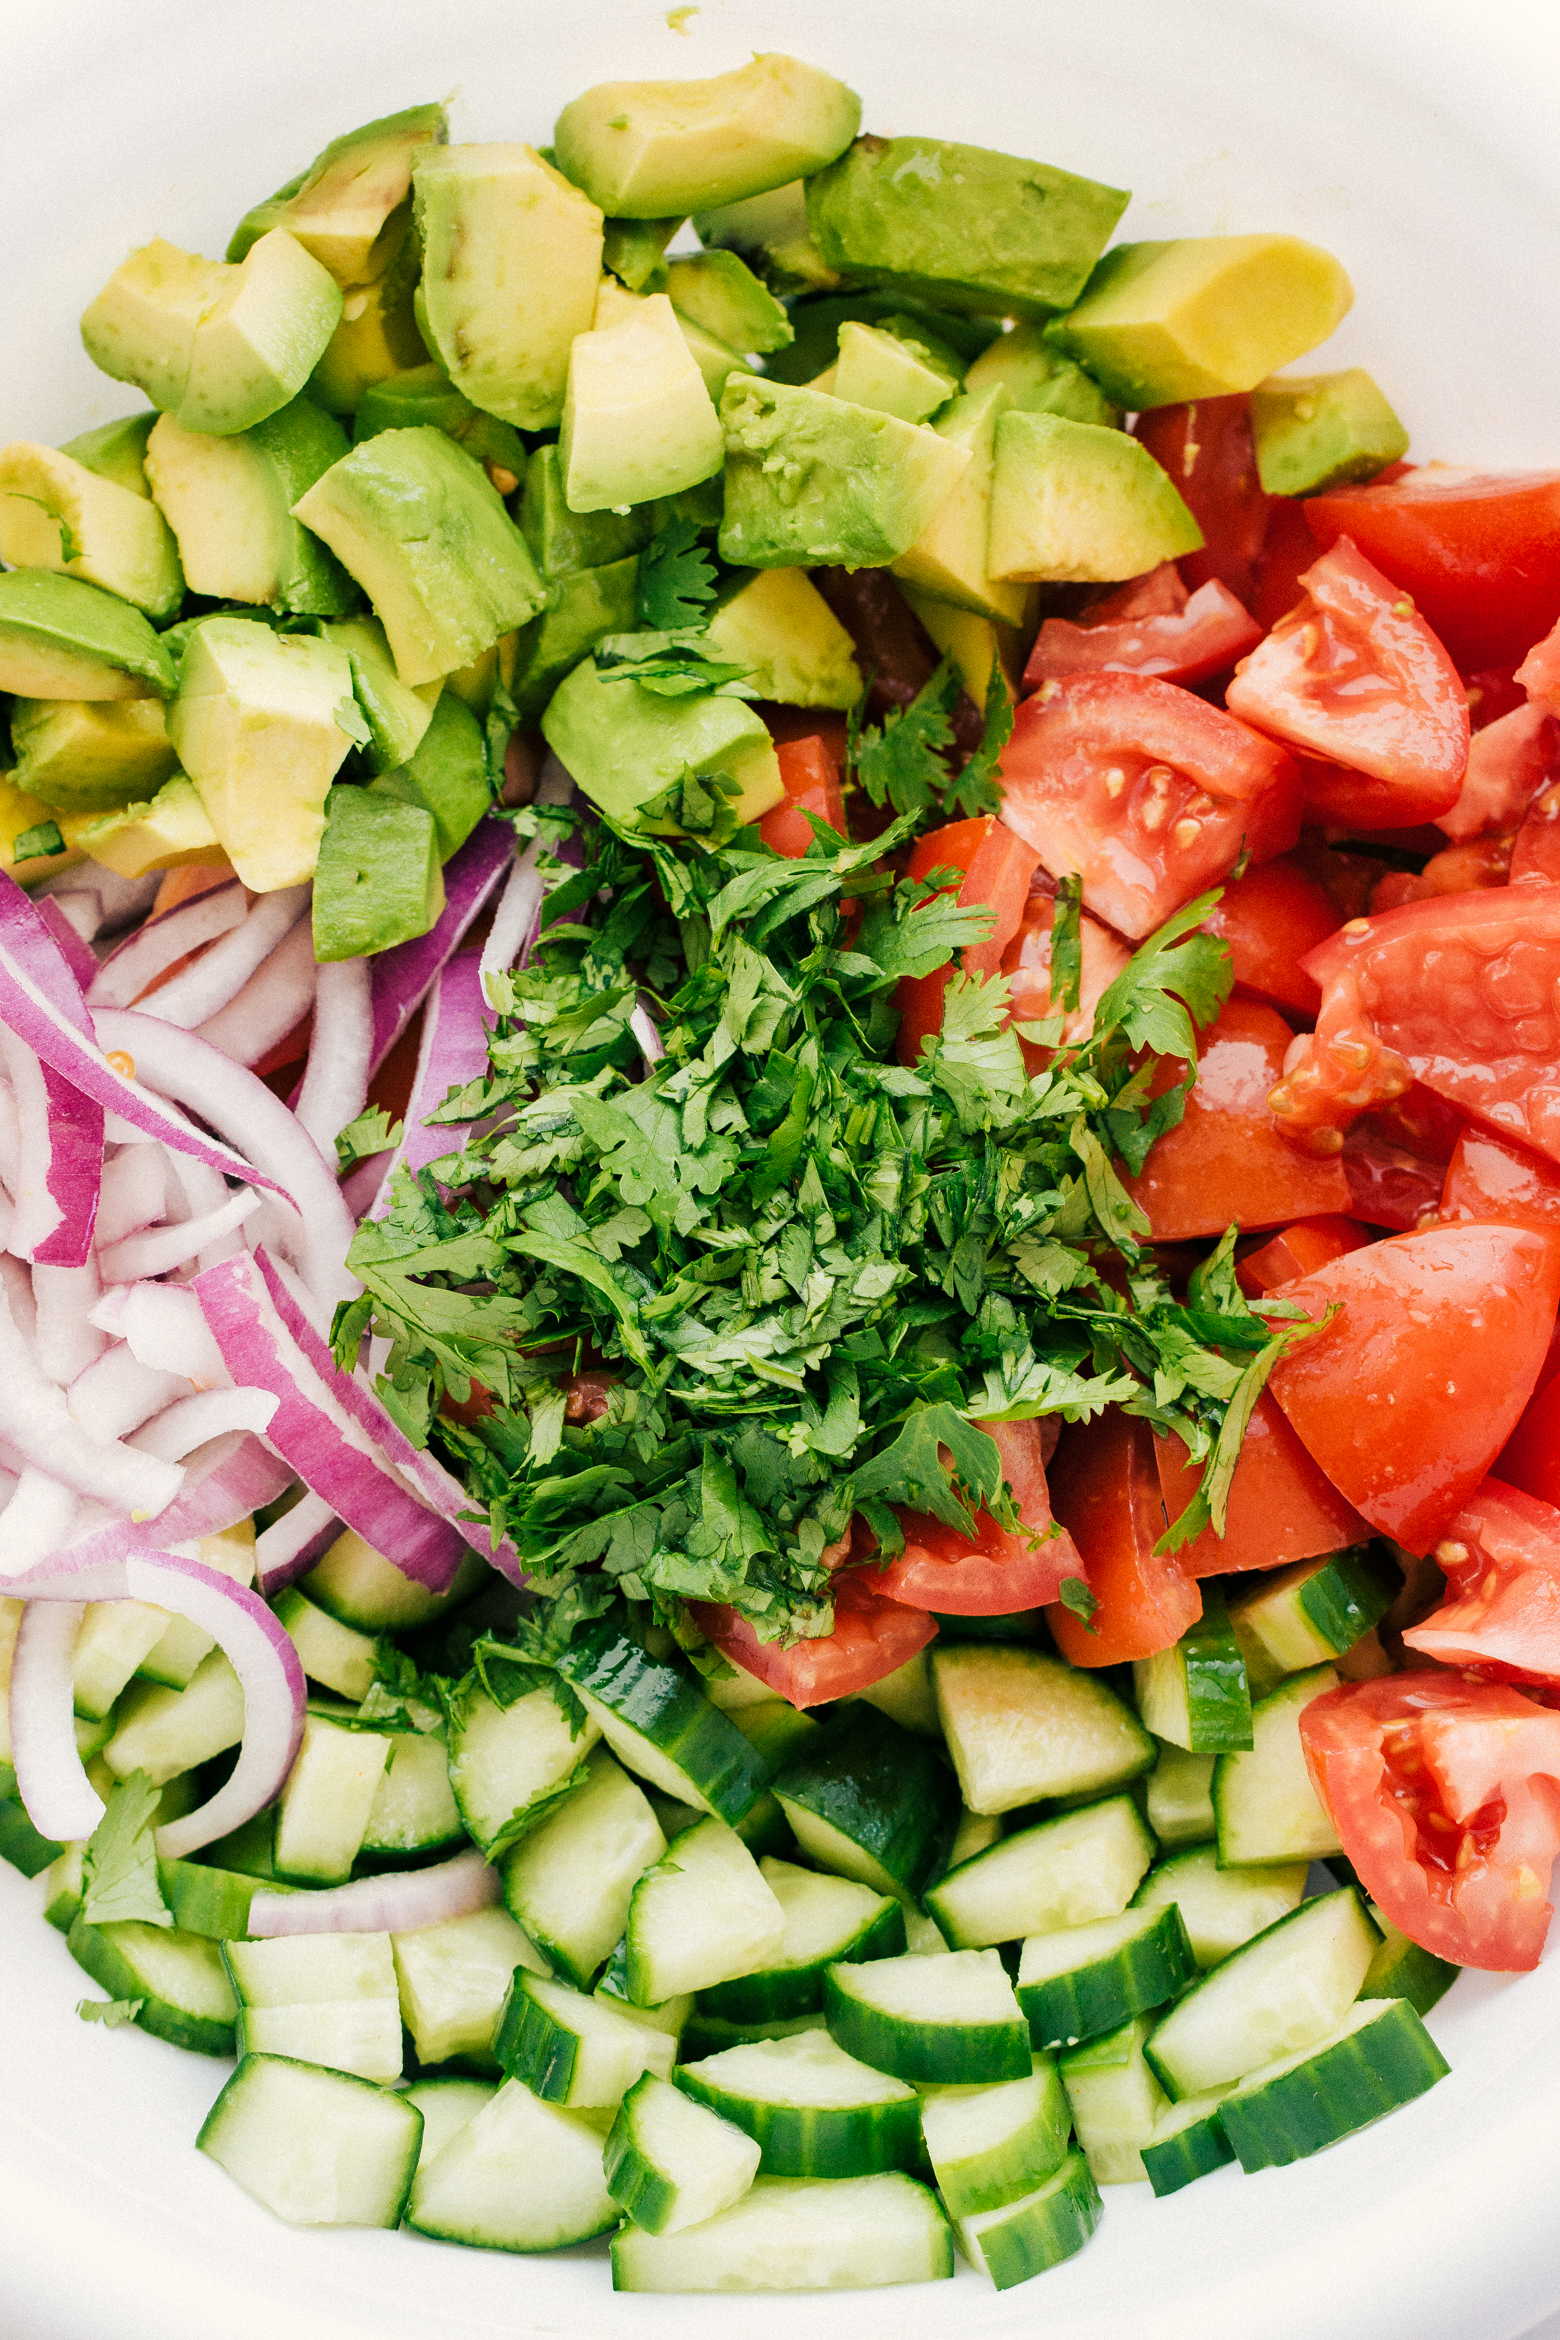 all the fresh ingredients chopped up to make avocado tomato cucumber salad